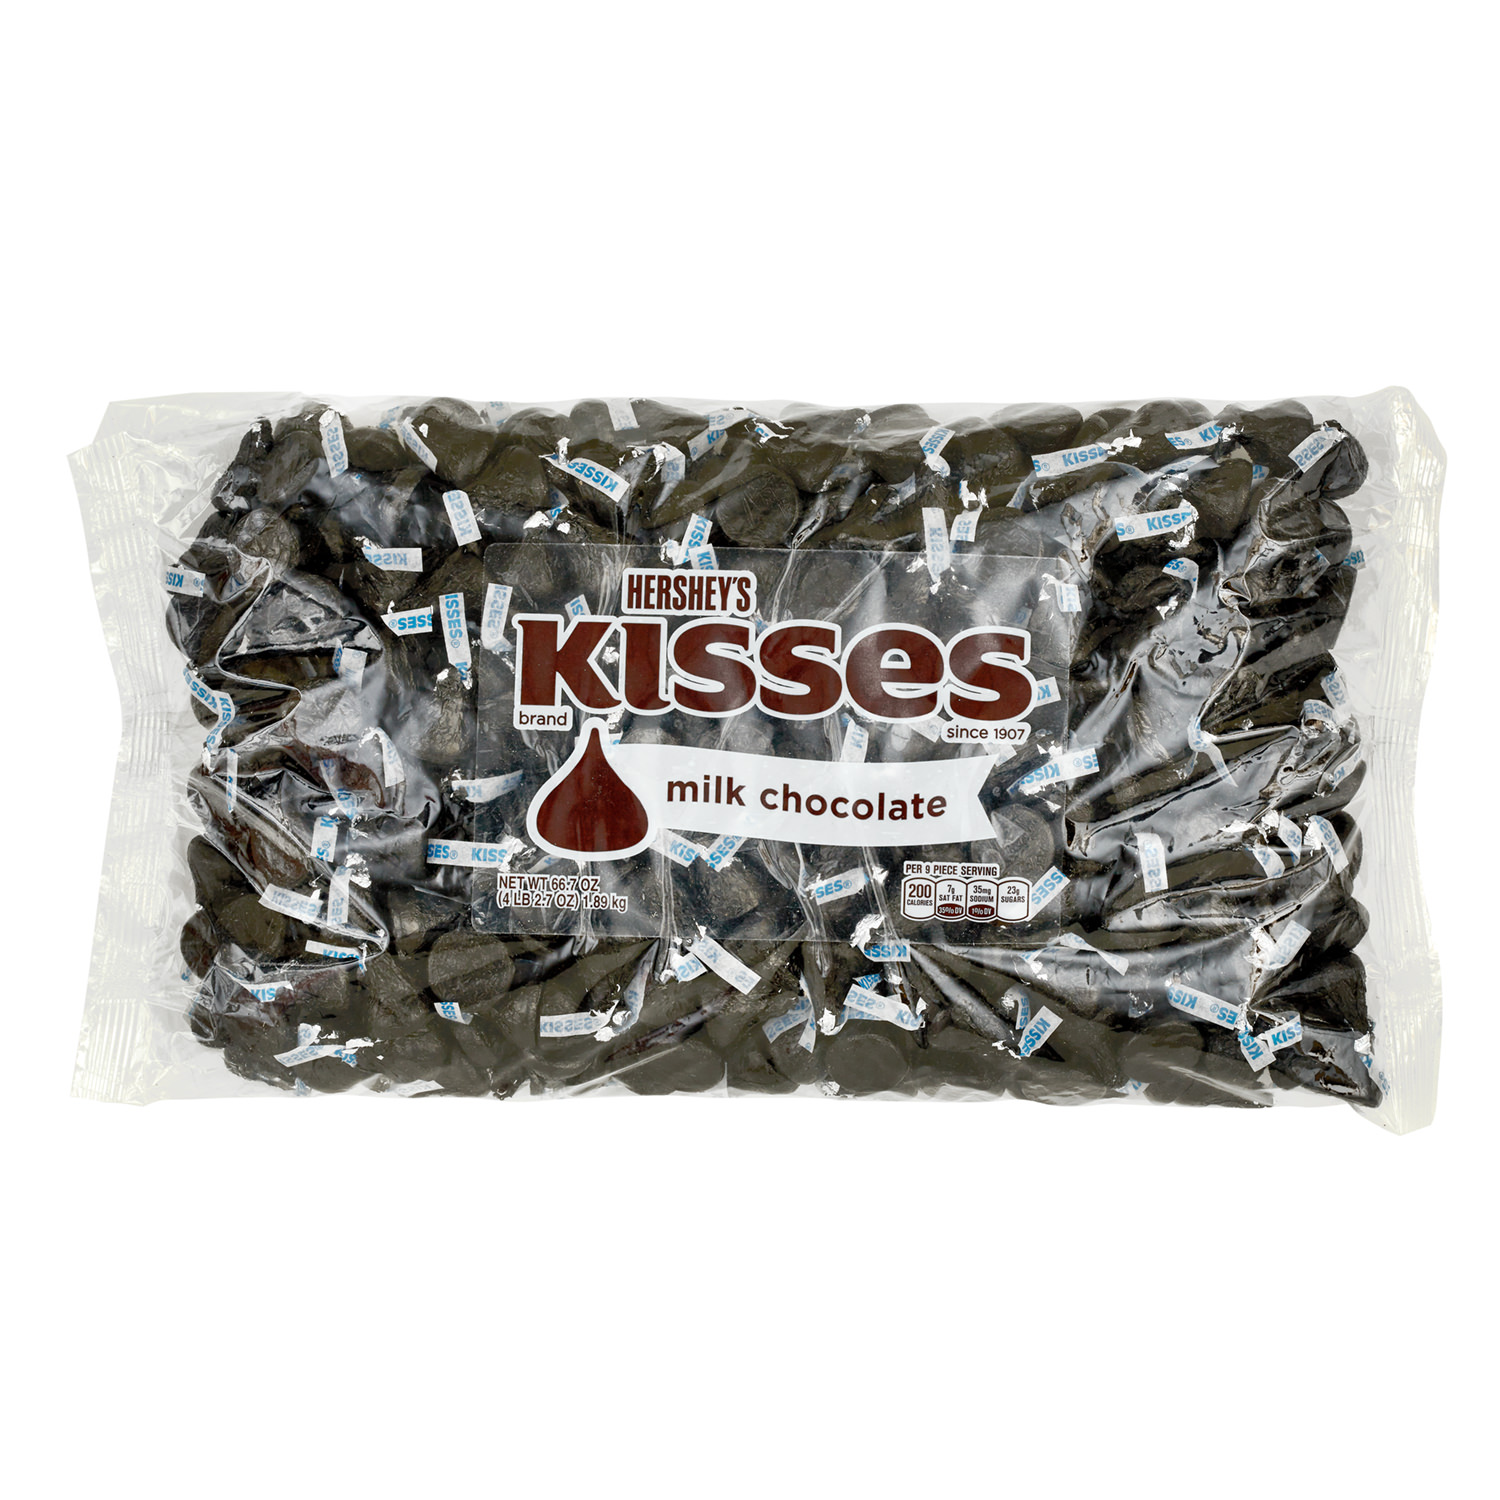 Kisses, Milk Chocolate Candy, Black Foil, 66.7 Oz - Online Only